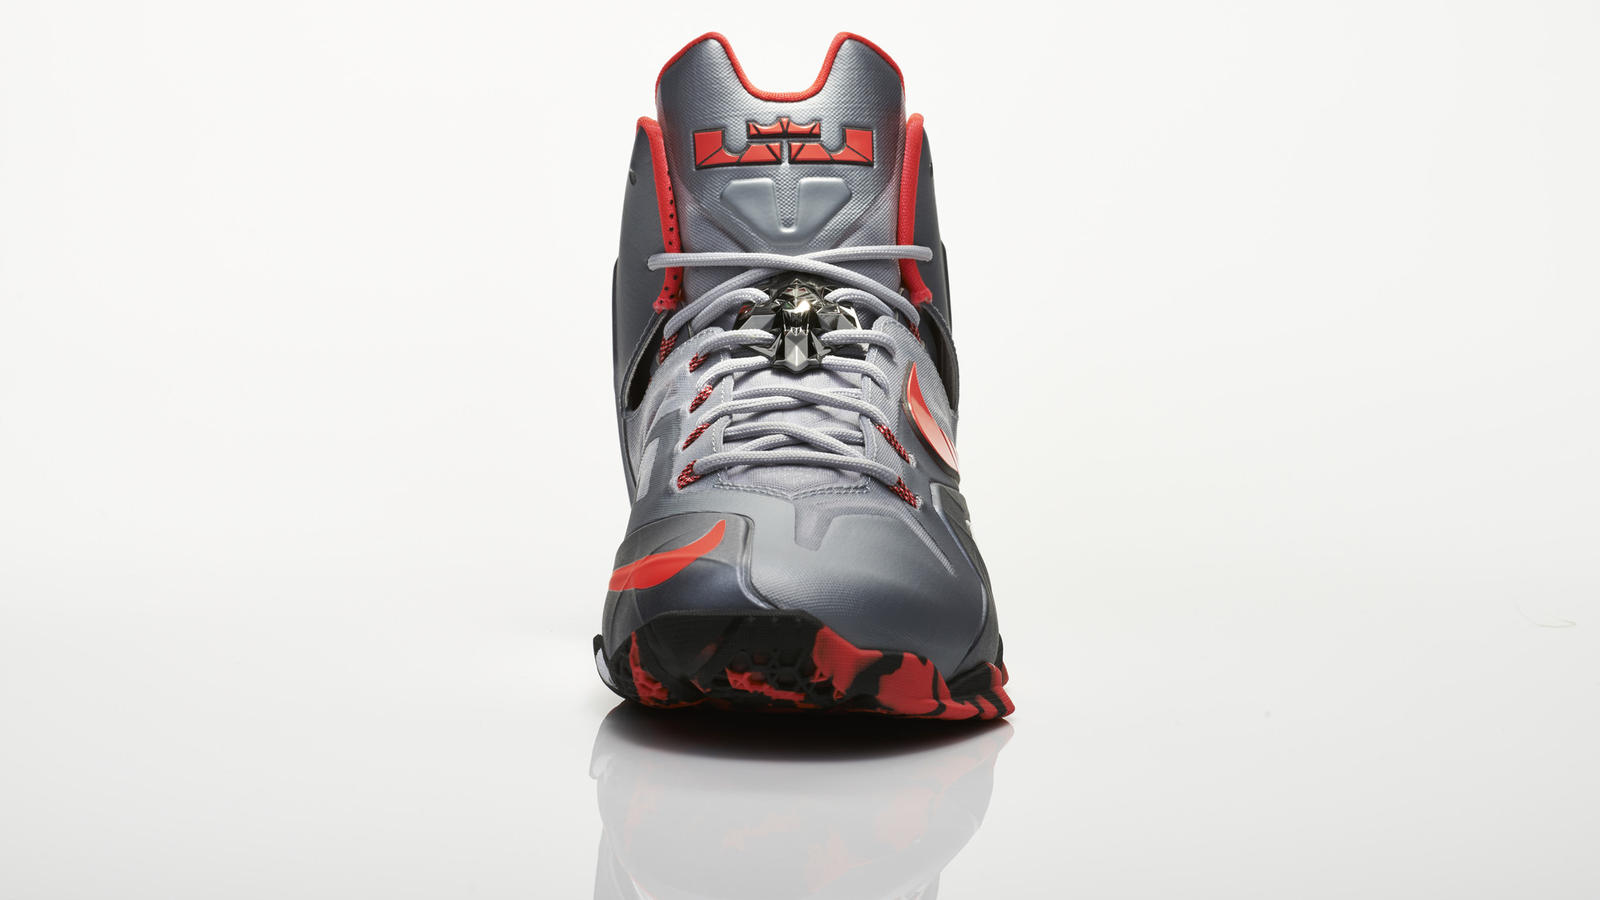 su14_bb_lebron11_elite_642846_001_return_front_0020